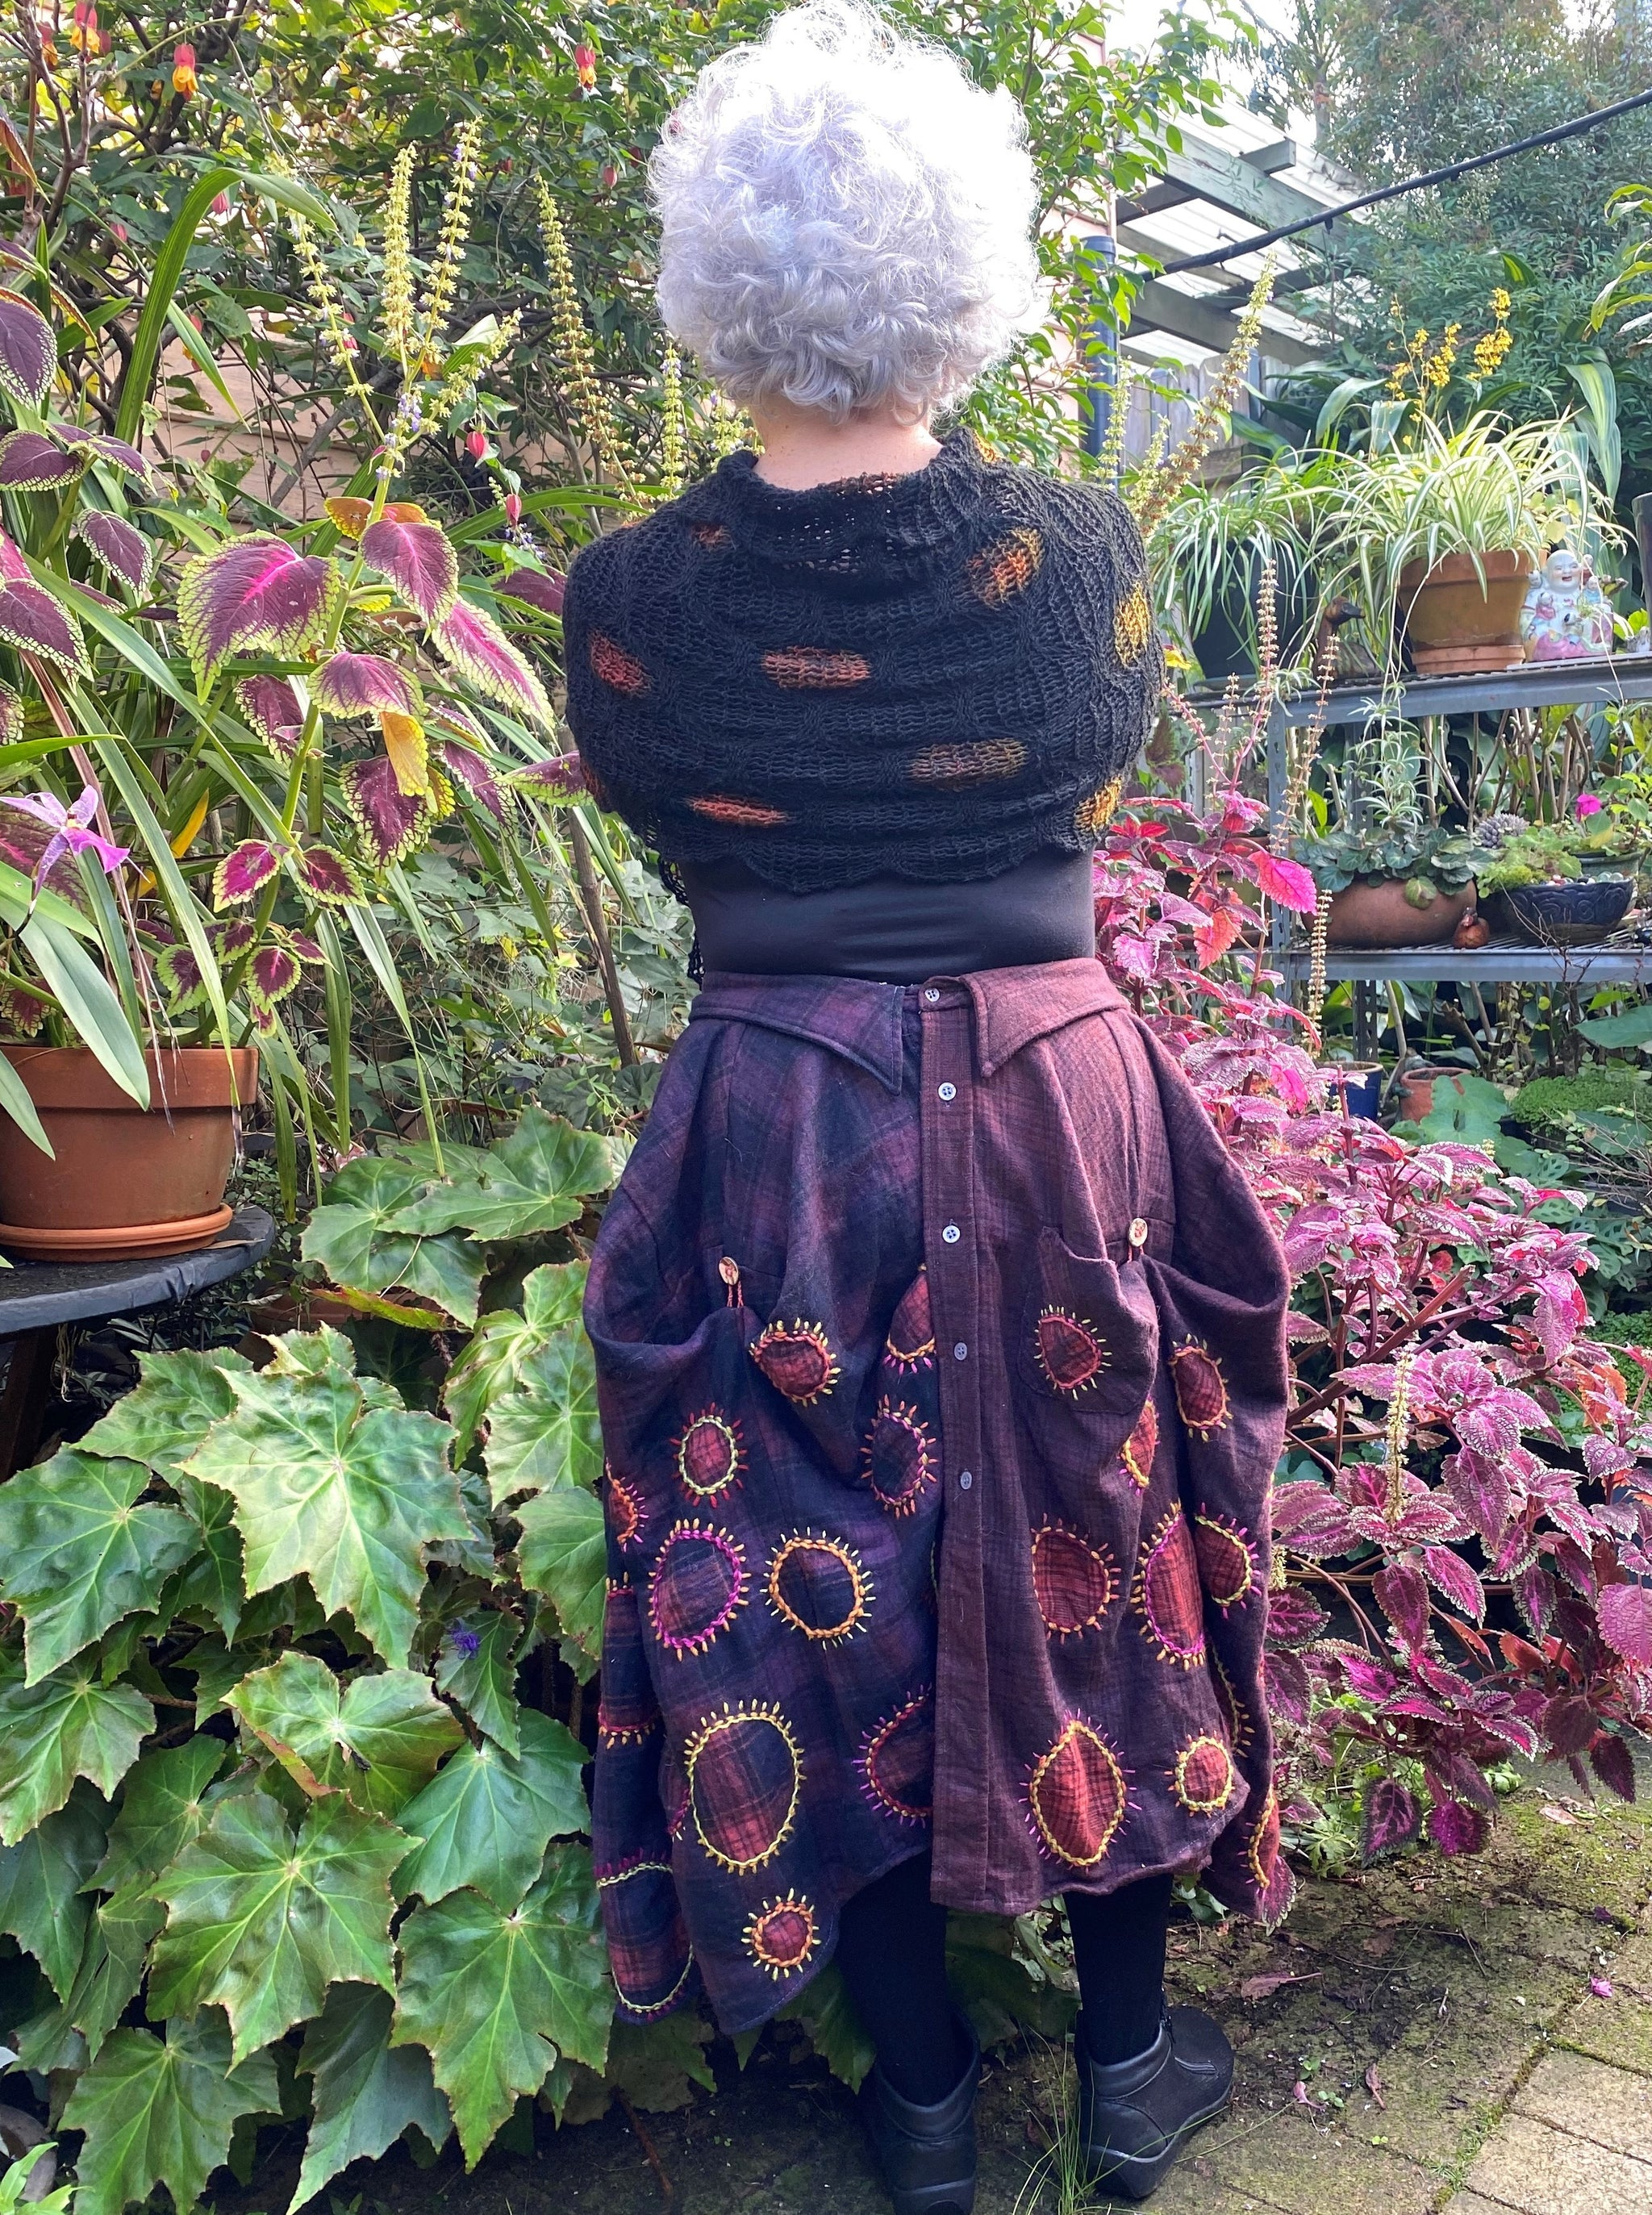 Cosy Skirt/shirt handmade by Liz Gemmell